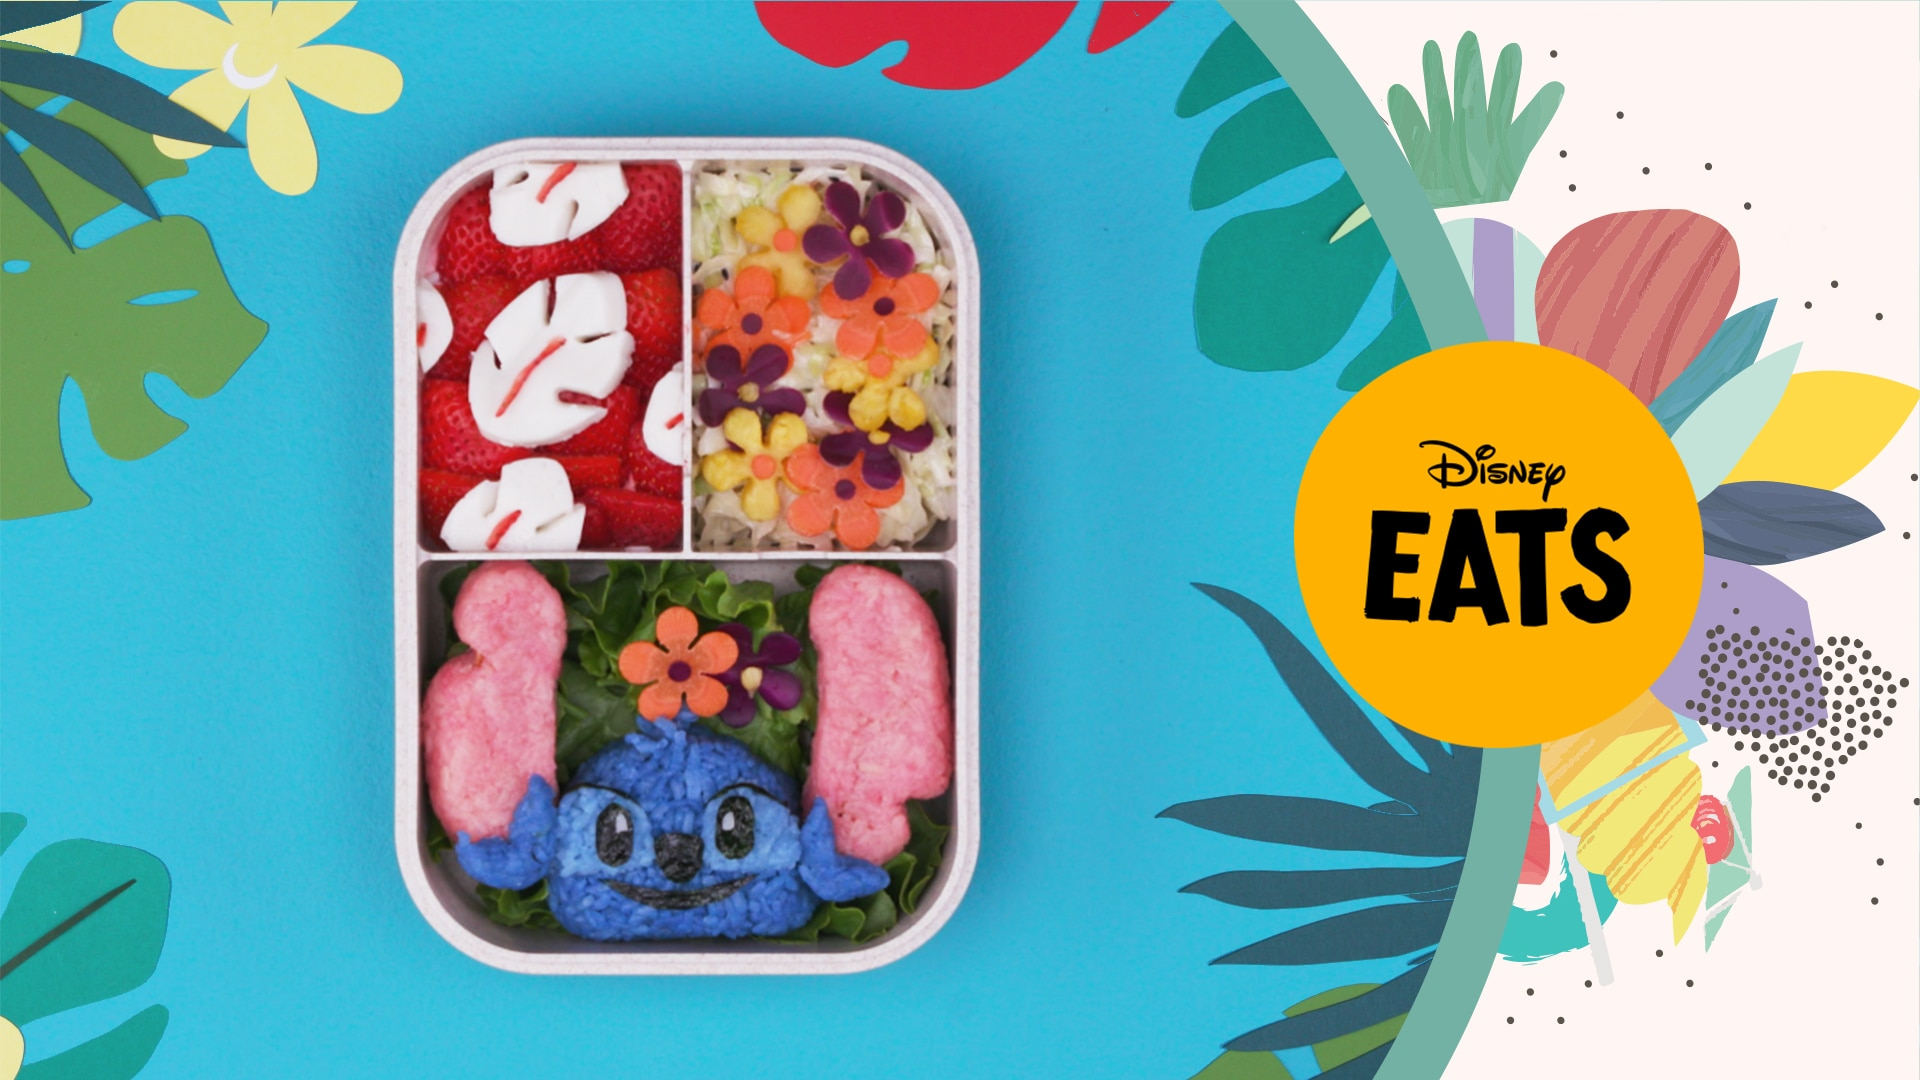 Lilo & Stitch Bento Box | Disney Eats